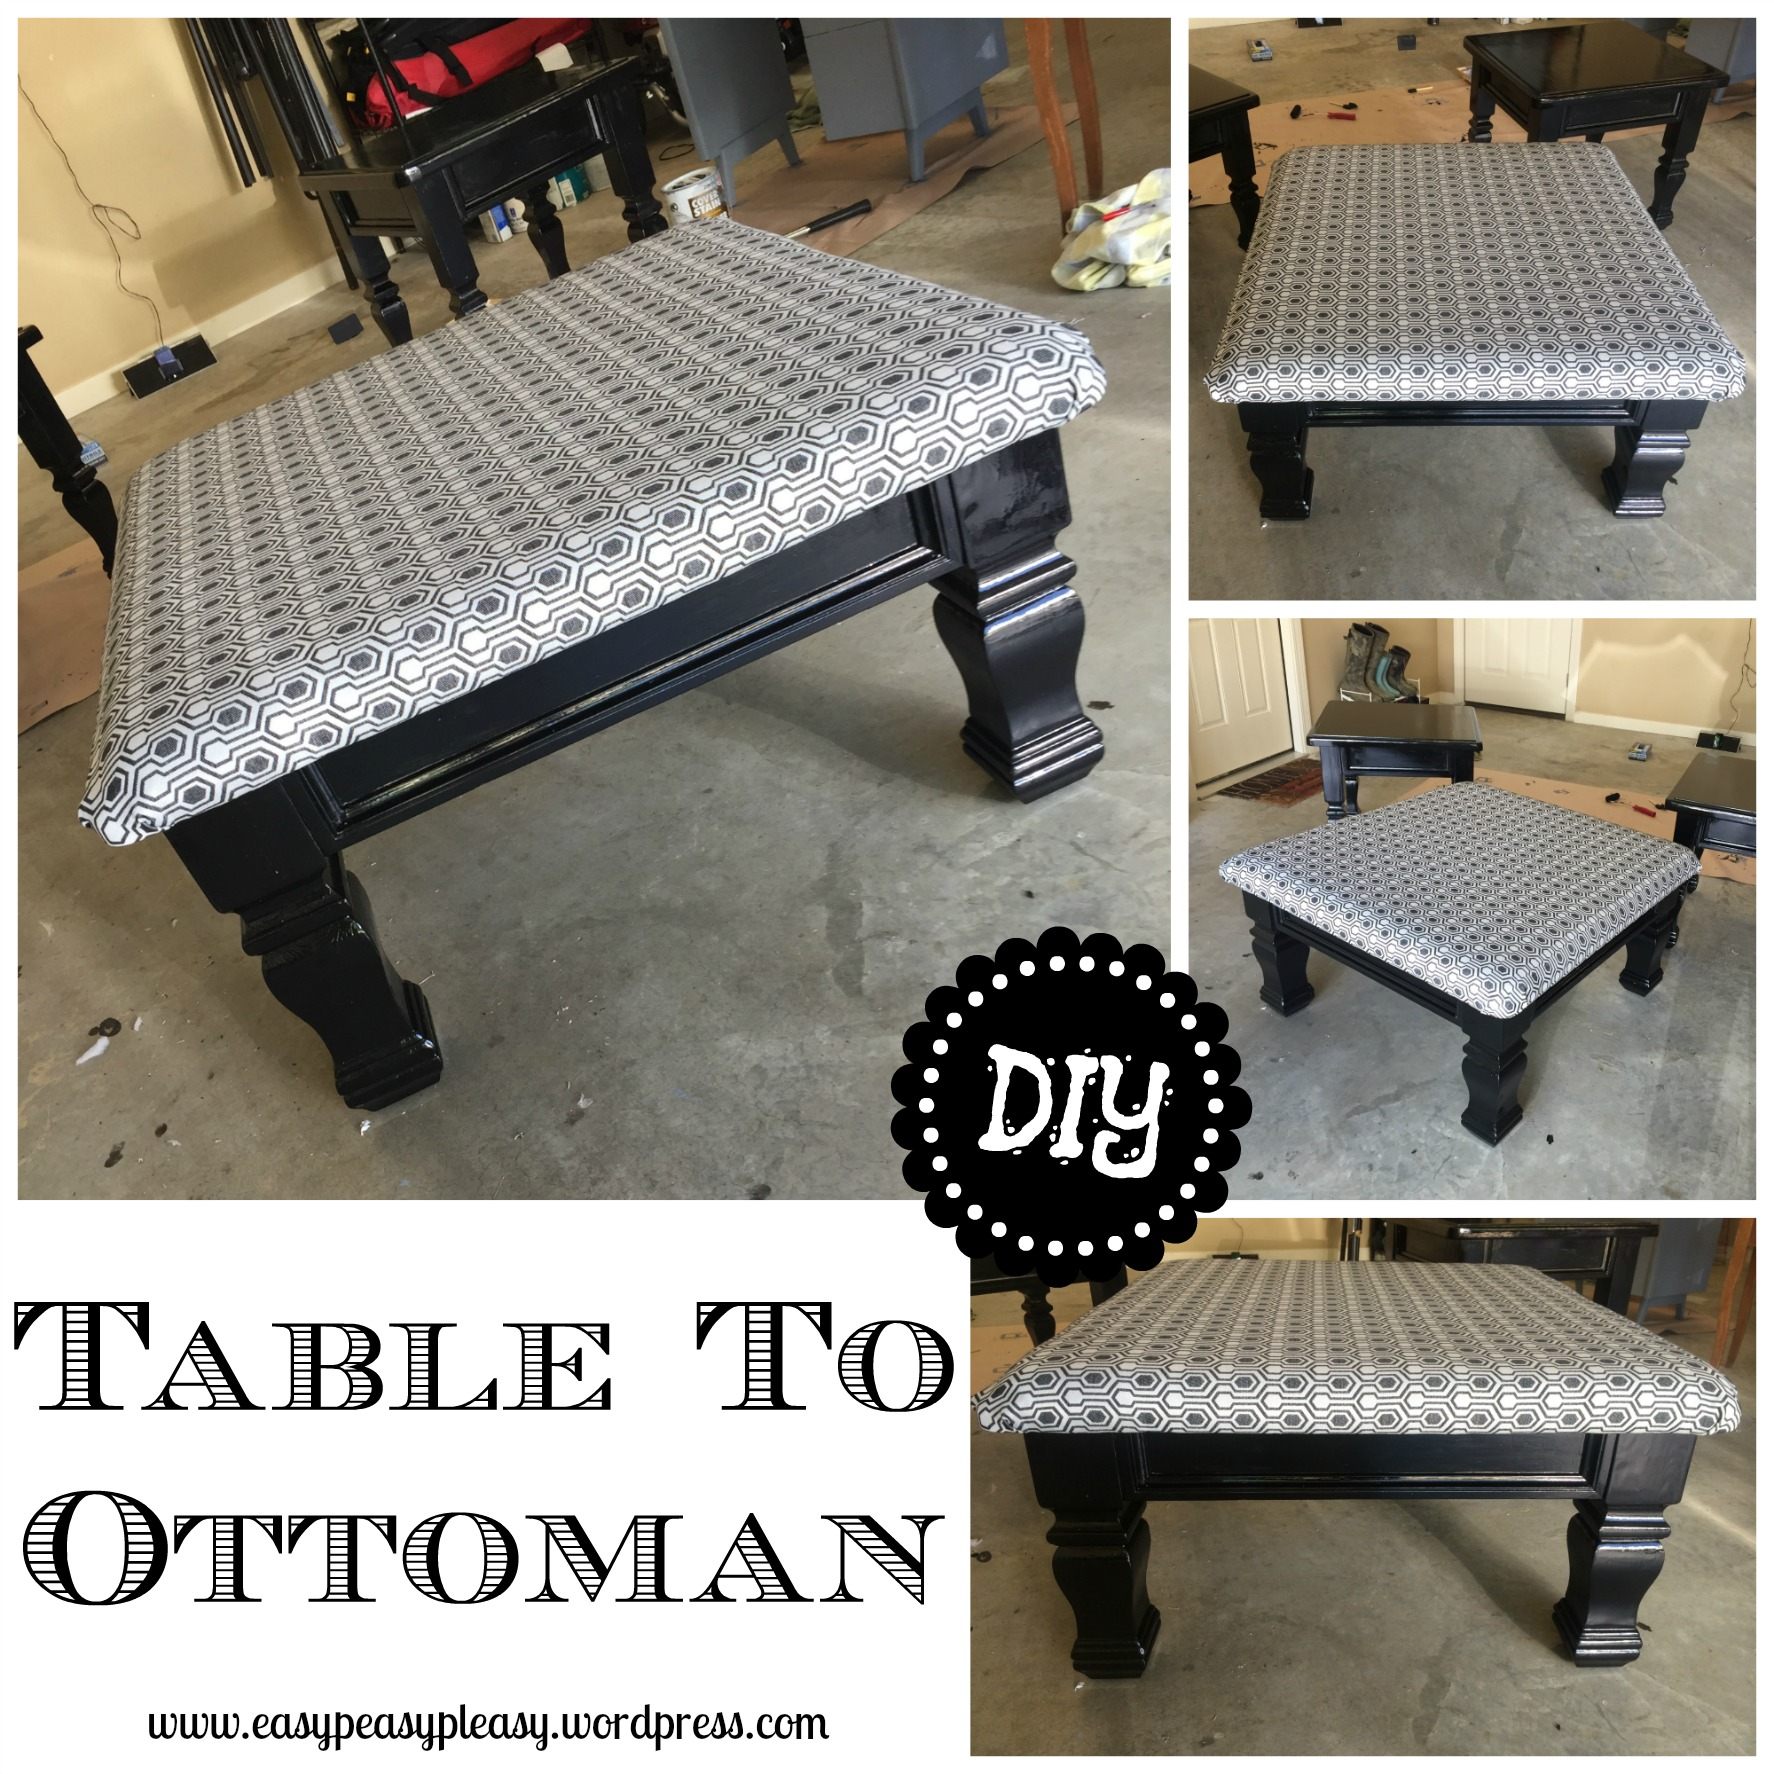 Quick and easy table to ottoman diy project.